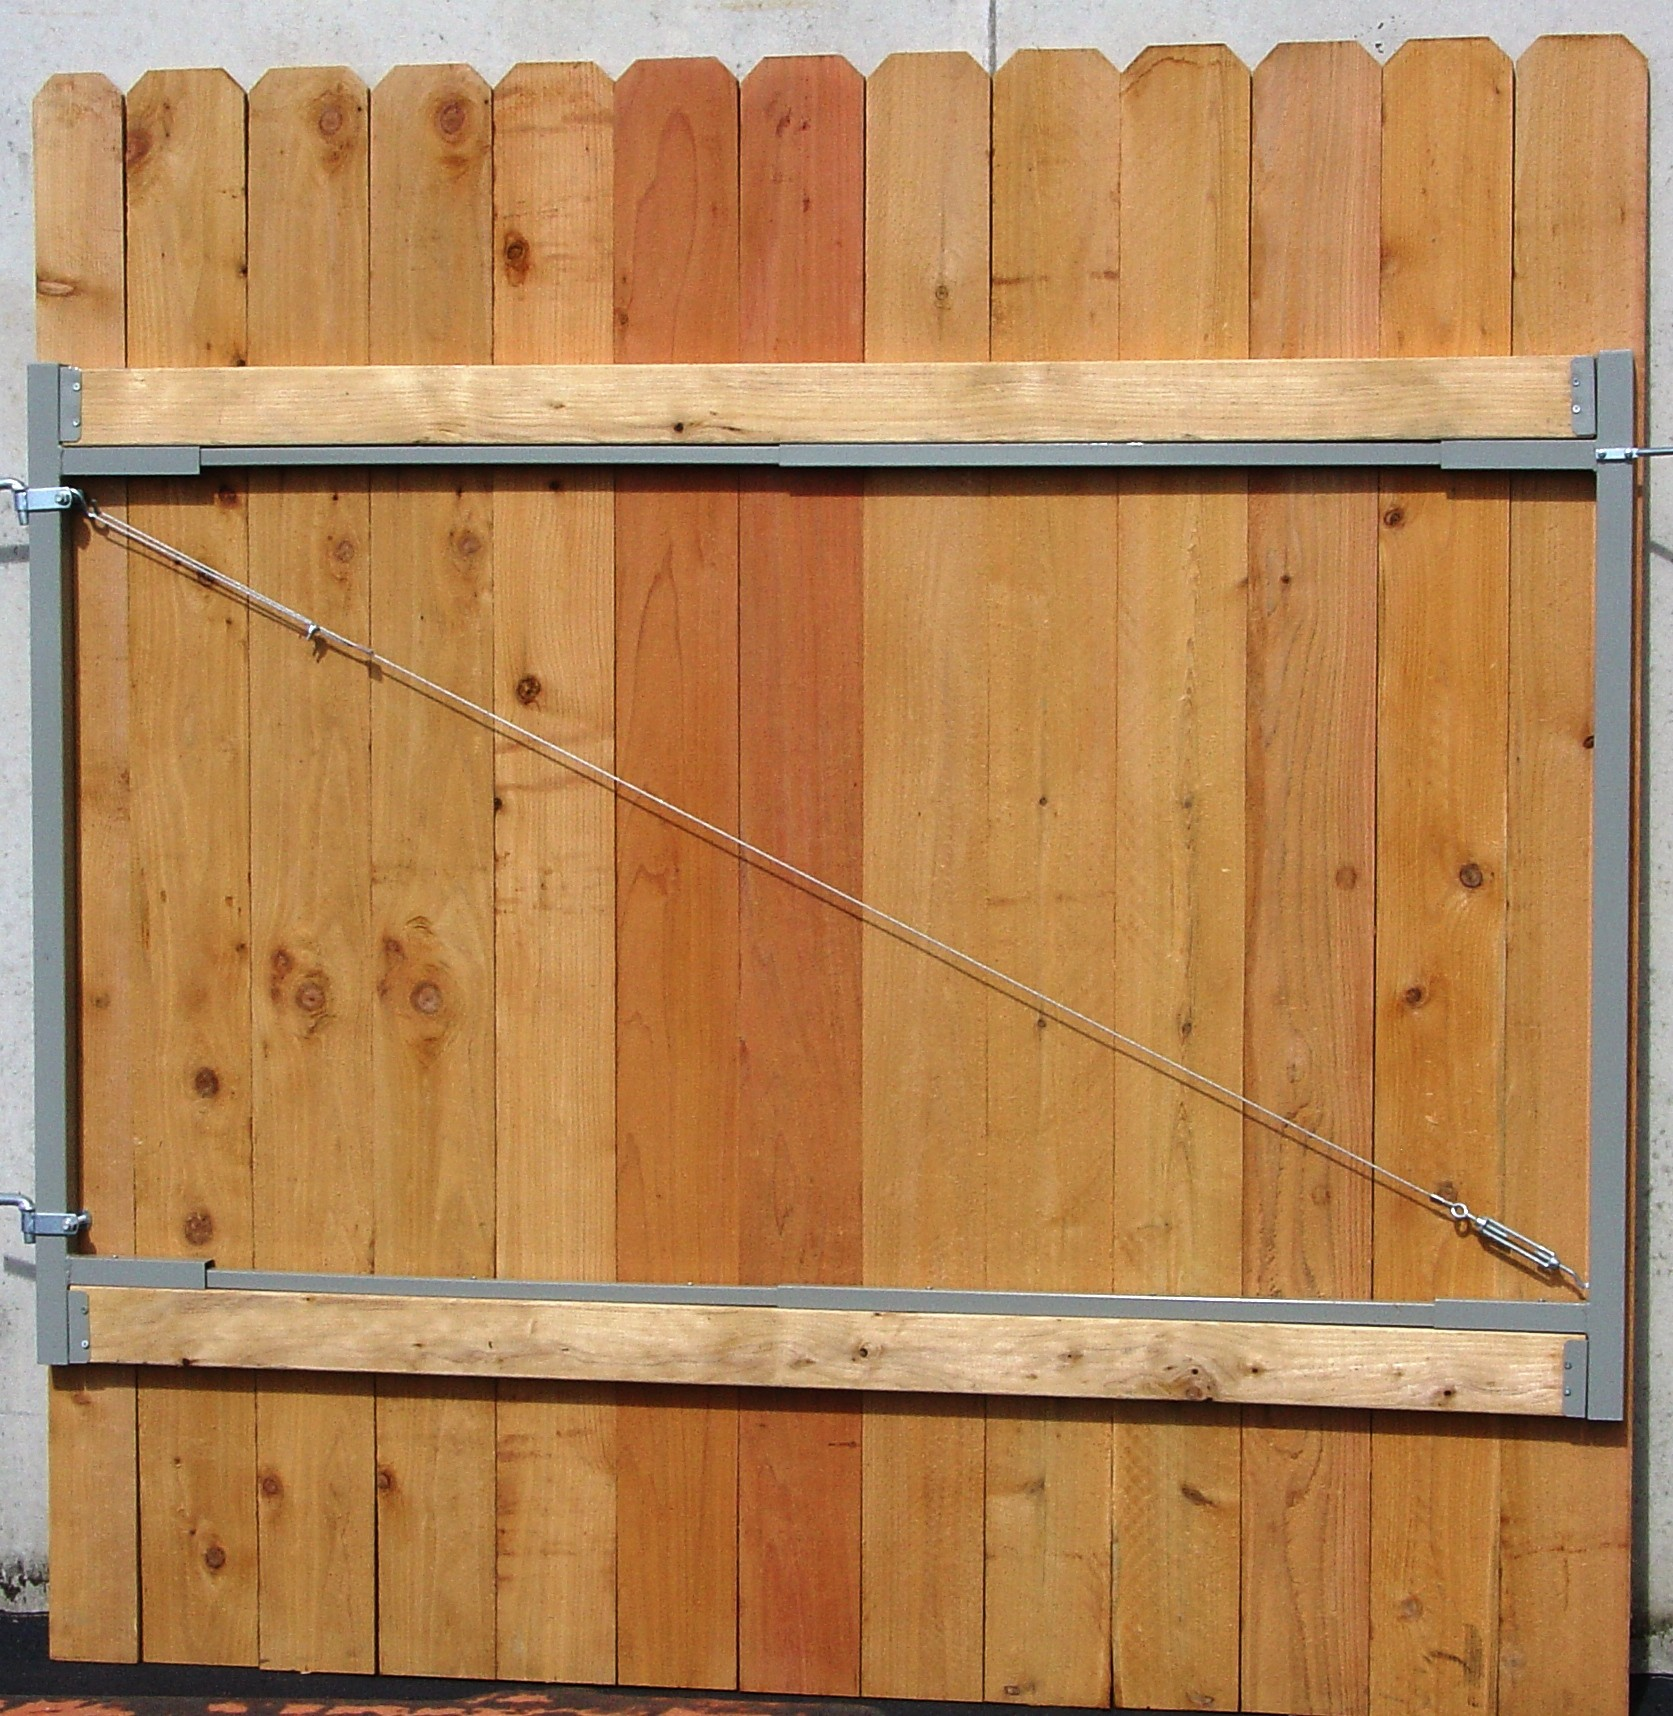 How To Build A Wood Gate With Metal Frame